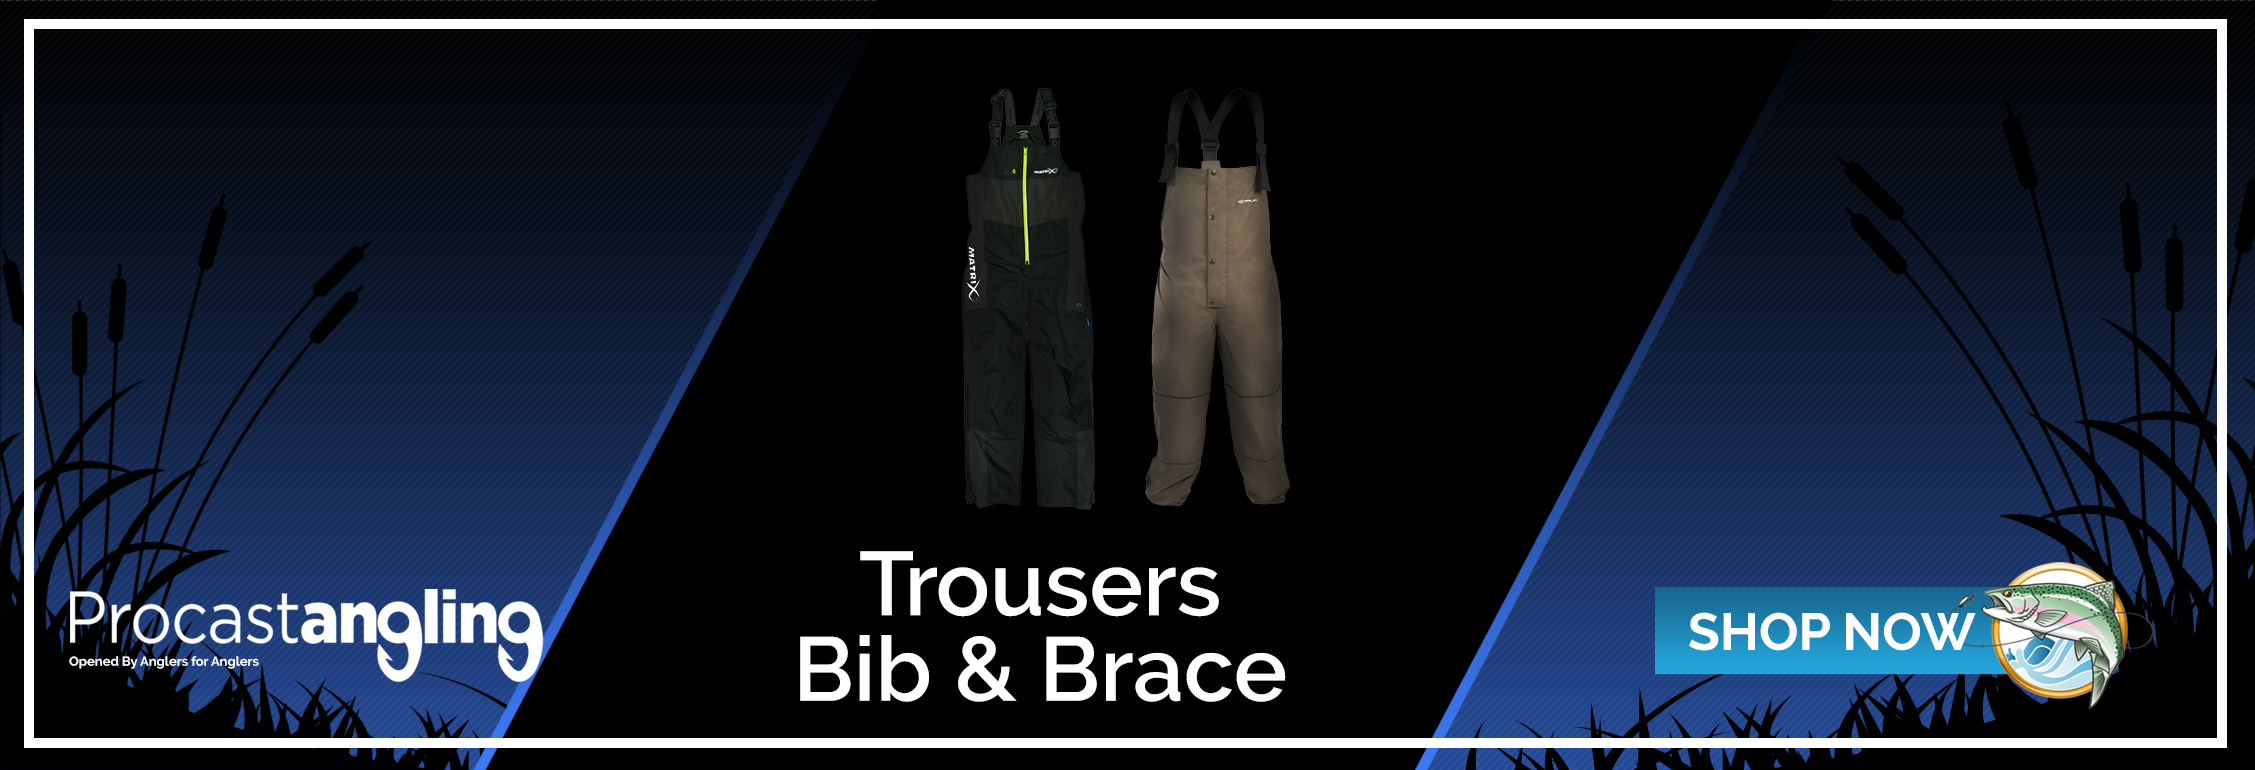 TROUSERS - BIB & BRACE